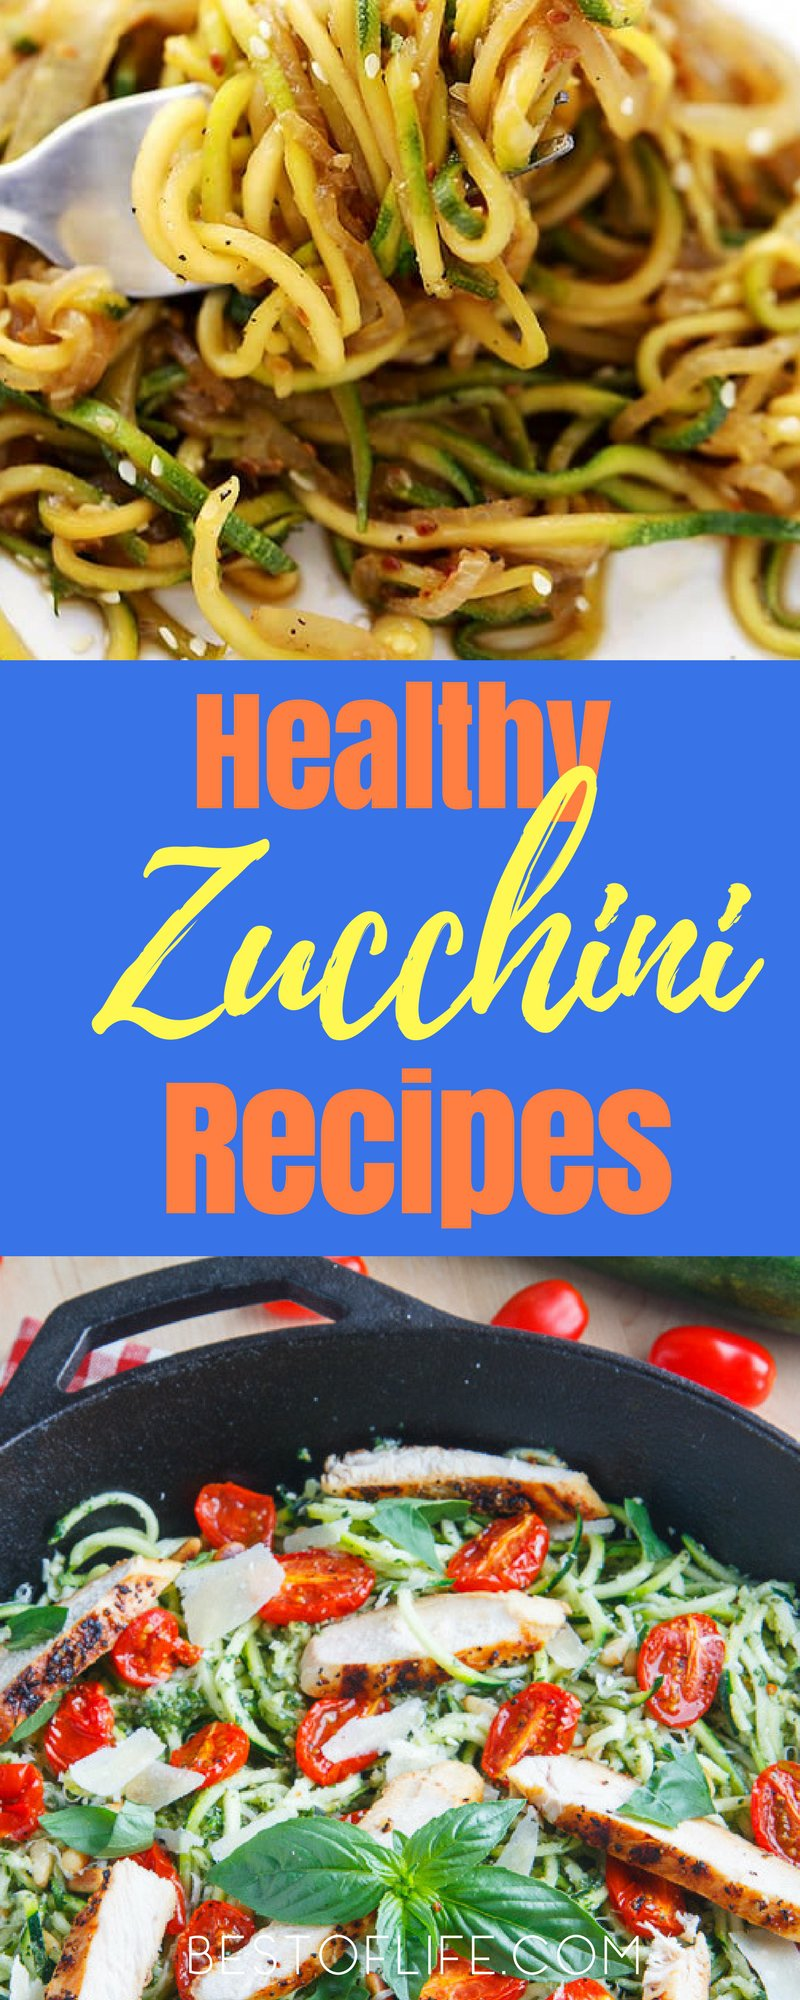 Easy zucchini recipes can become the best low carb recipes and fit into any diet plan without even trying. Zucchini Recipes | Easy Zucchini Recipes | Best Zucchini Recipes | Low Carb Recipes | Health Benefits of Zucchini | What Makes Zucchini Healthy | Why Eat Zucchini to Lose Weight | Easy Keto Recipes | Easy Low Carb Recipes